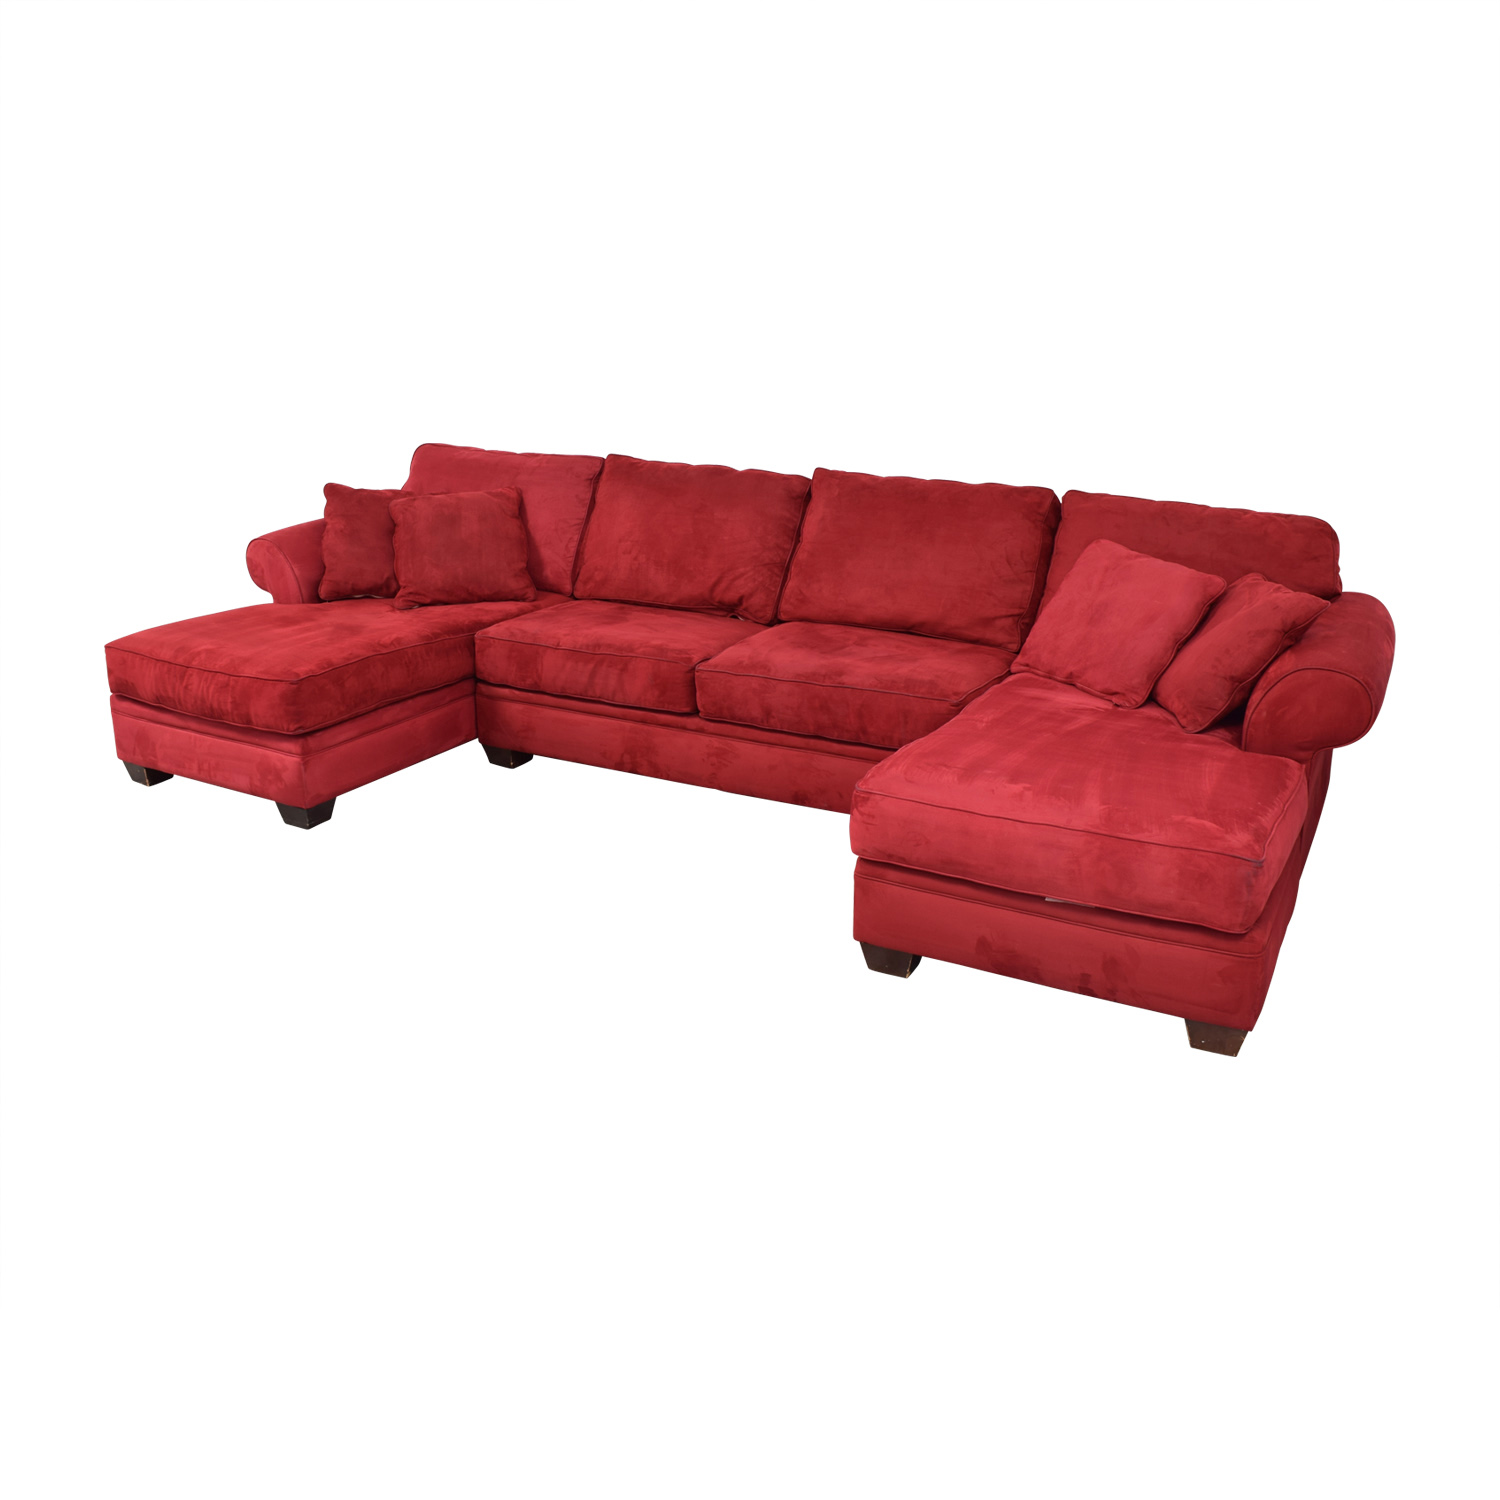 Double Chaise Sectional Sofas